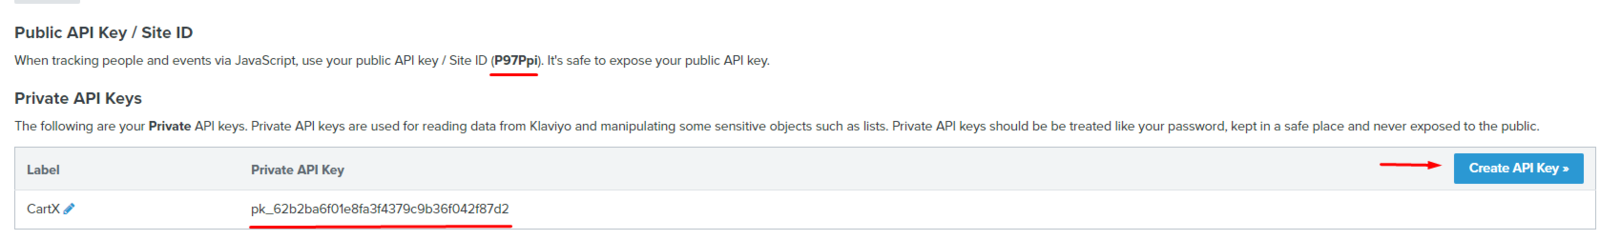 The first field is the Public Key. The second one is the Private Key.